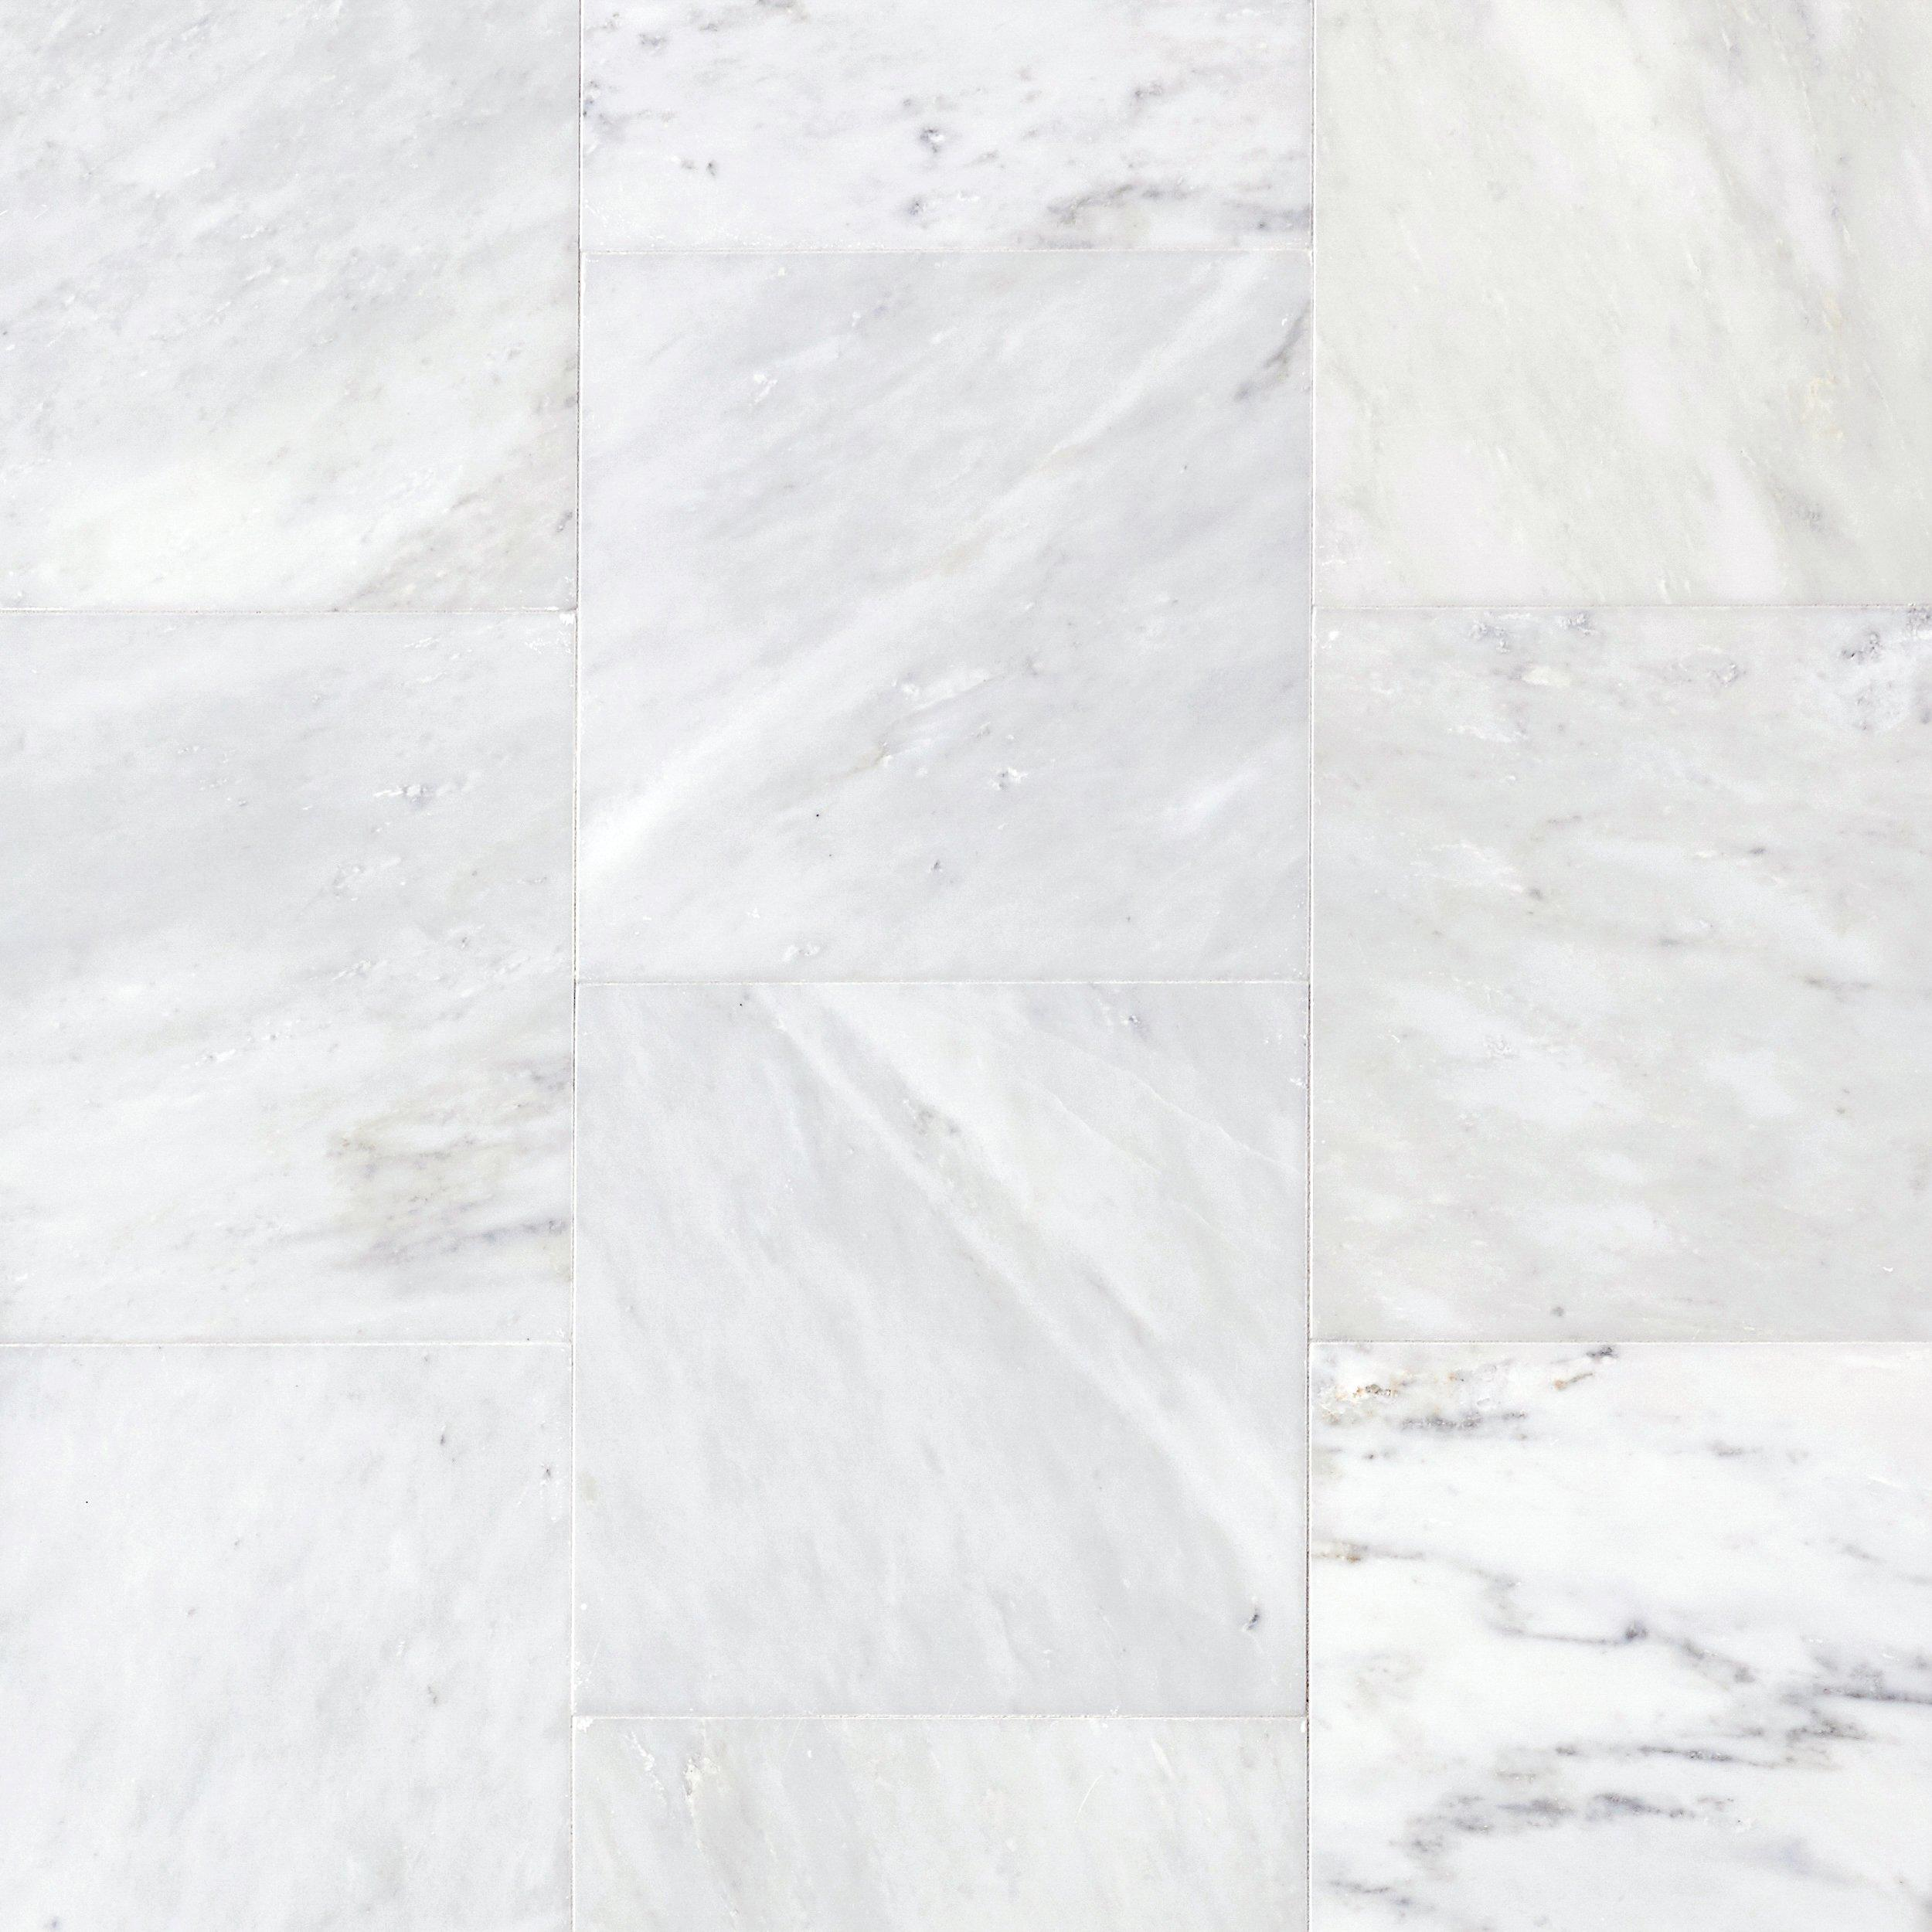 Carrara white polished marble tile 12in x 12in 921101165 carrara white polished marble tile 12in x 12in 921101165 floor and decor dailygadgetfo Image collections